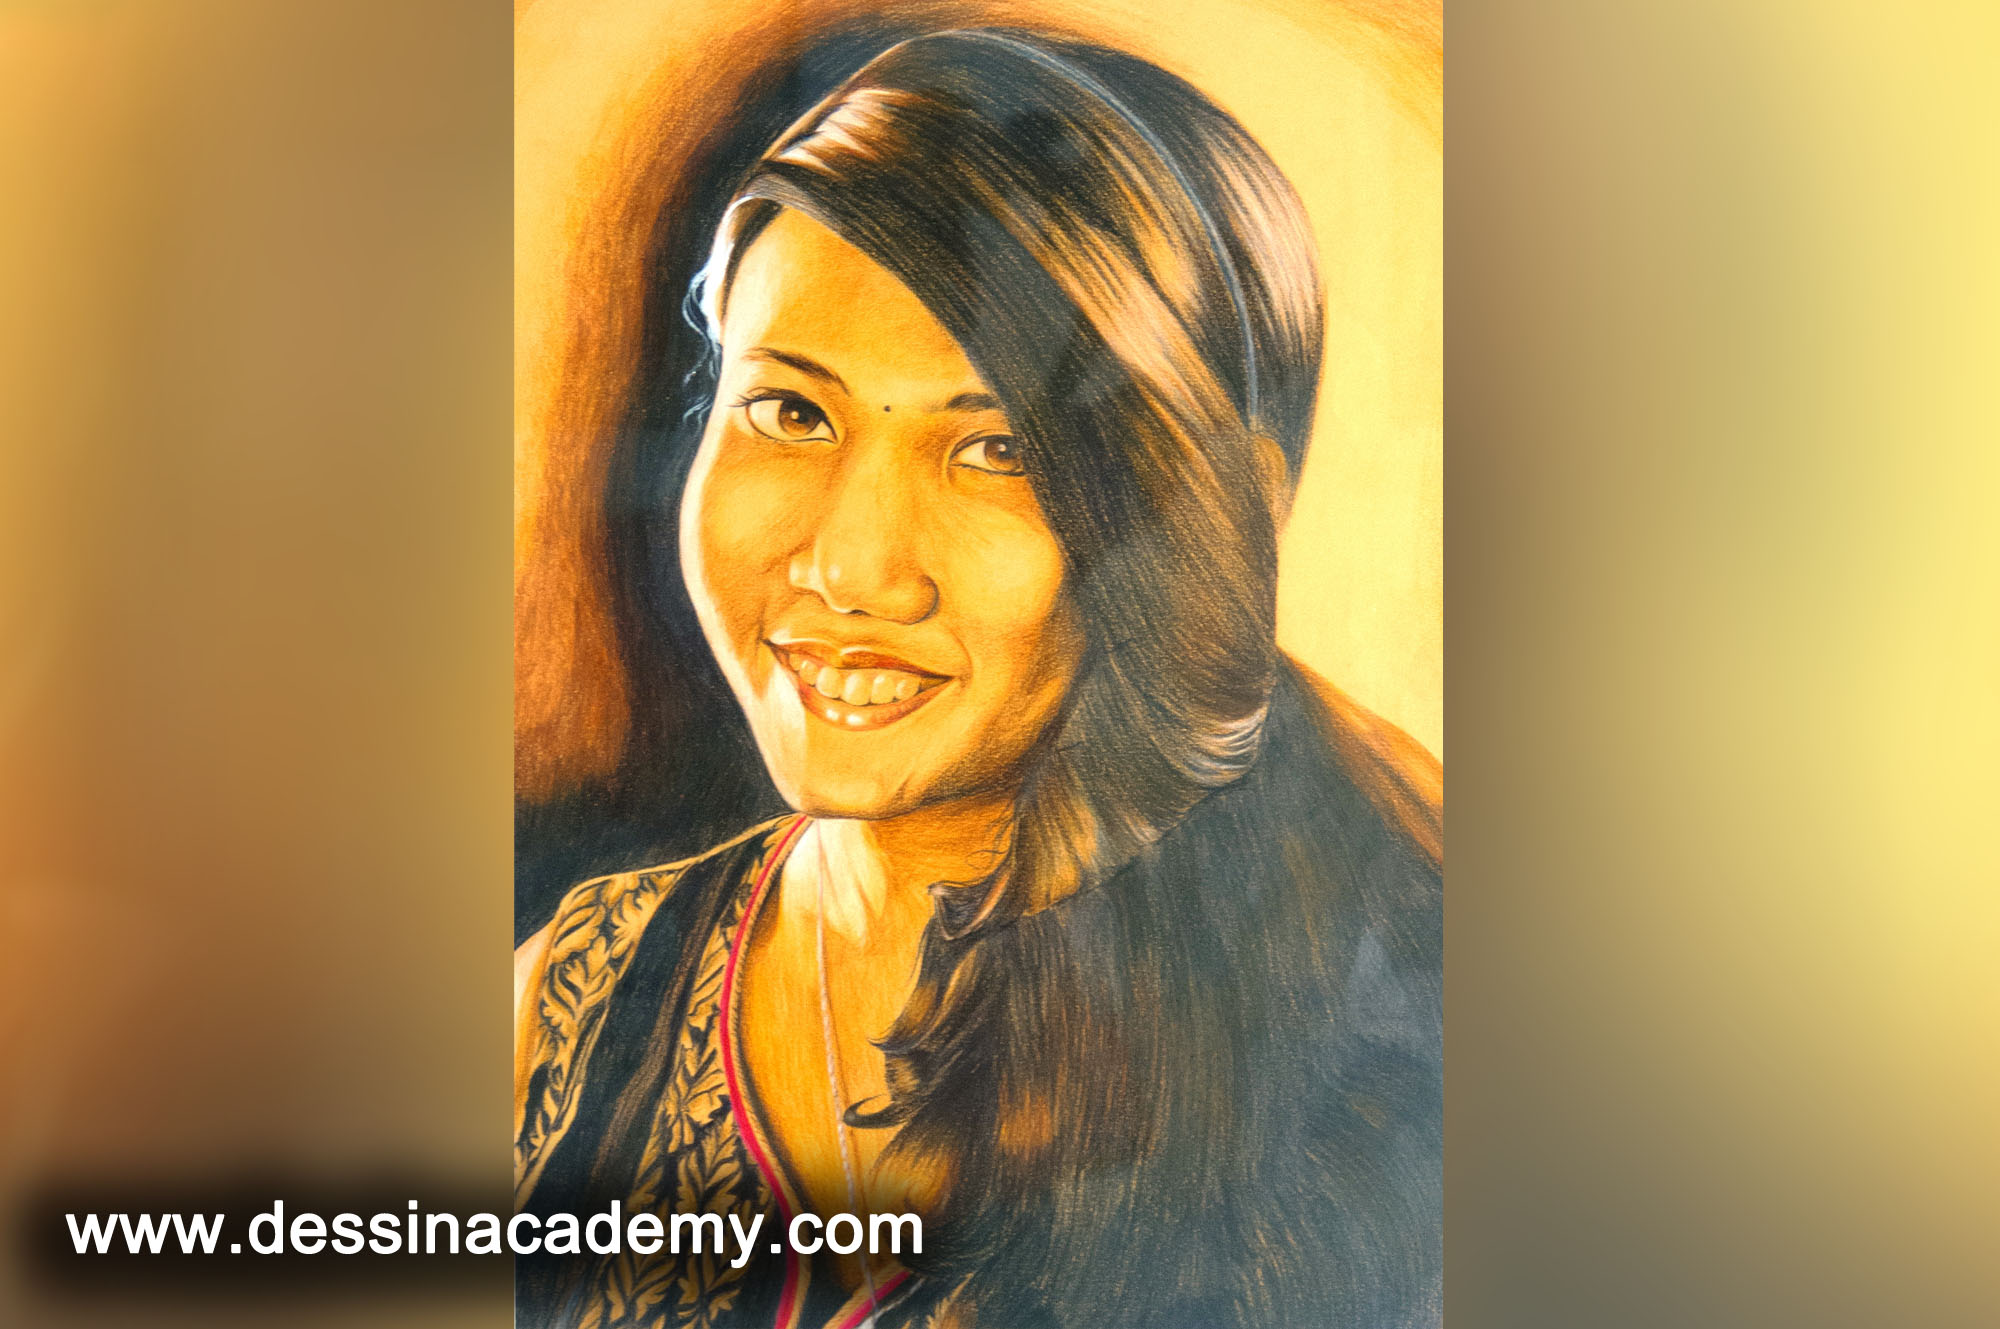 Dessin School of Arts Students Painting, Dessin School of Arts, Pencil Drawing Center in Velachery